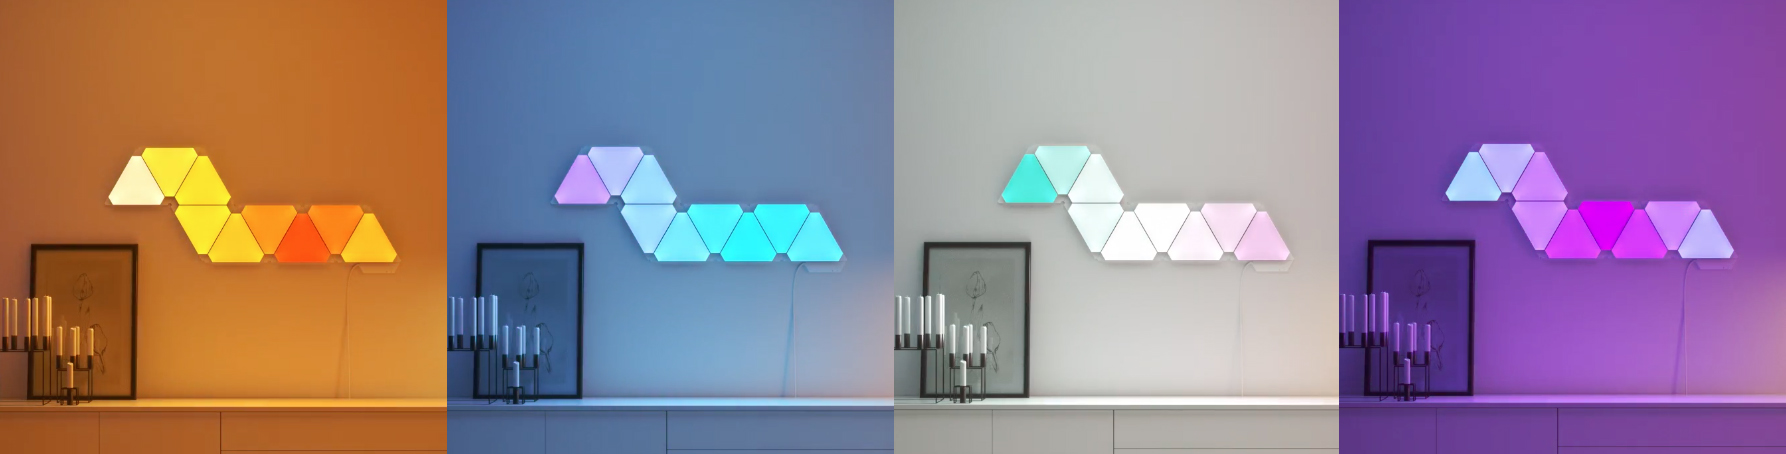 Nanoleaf Aurora Light Scenes